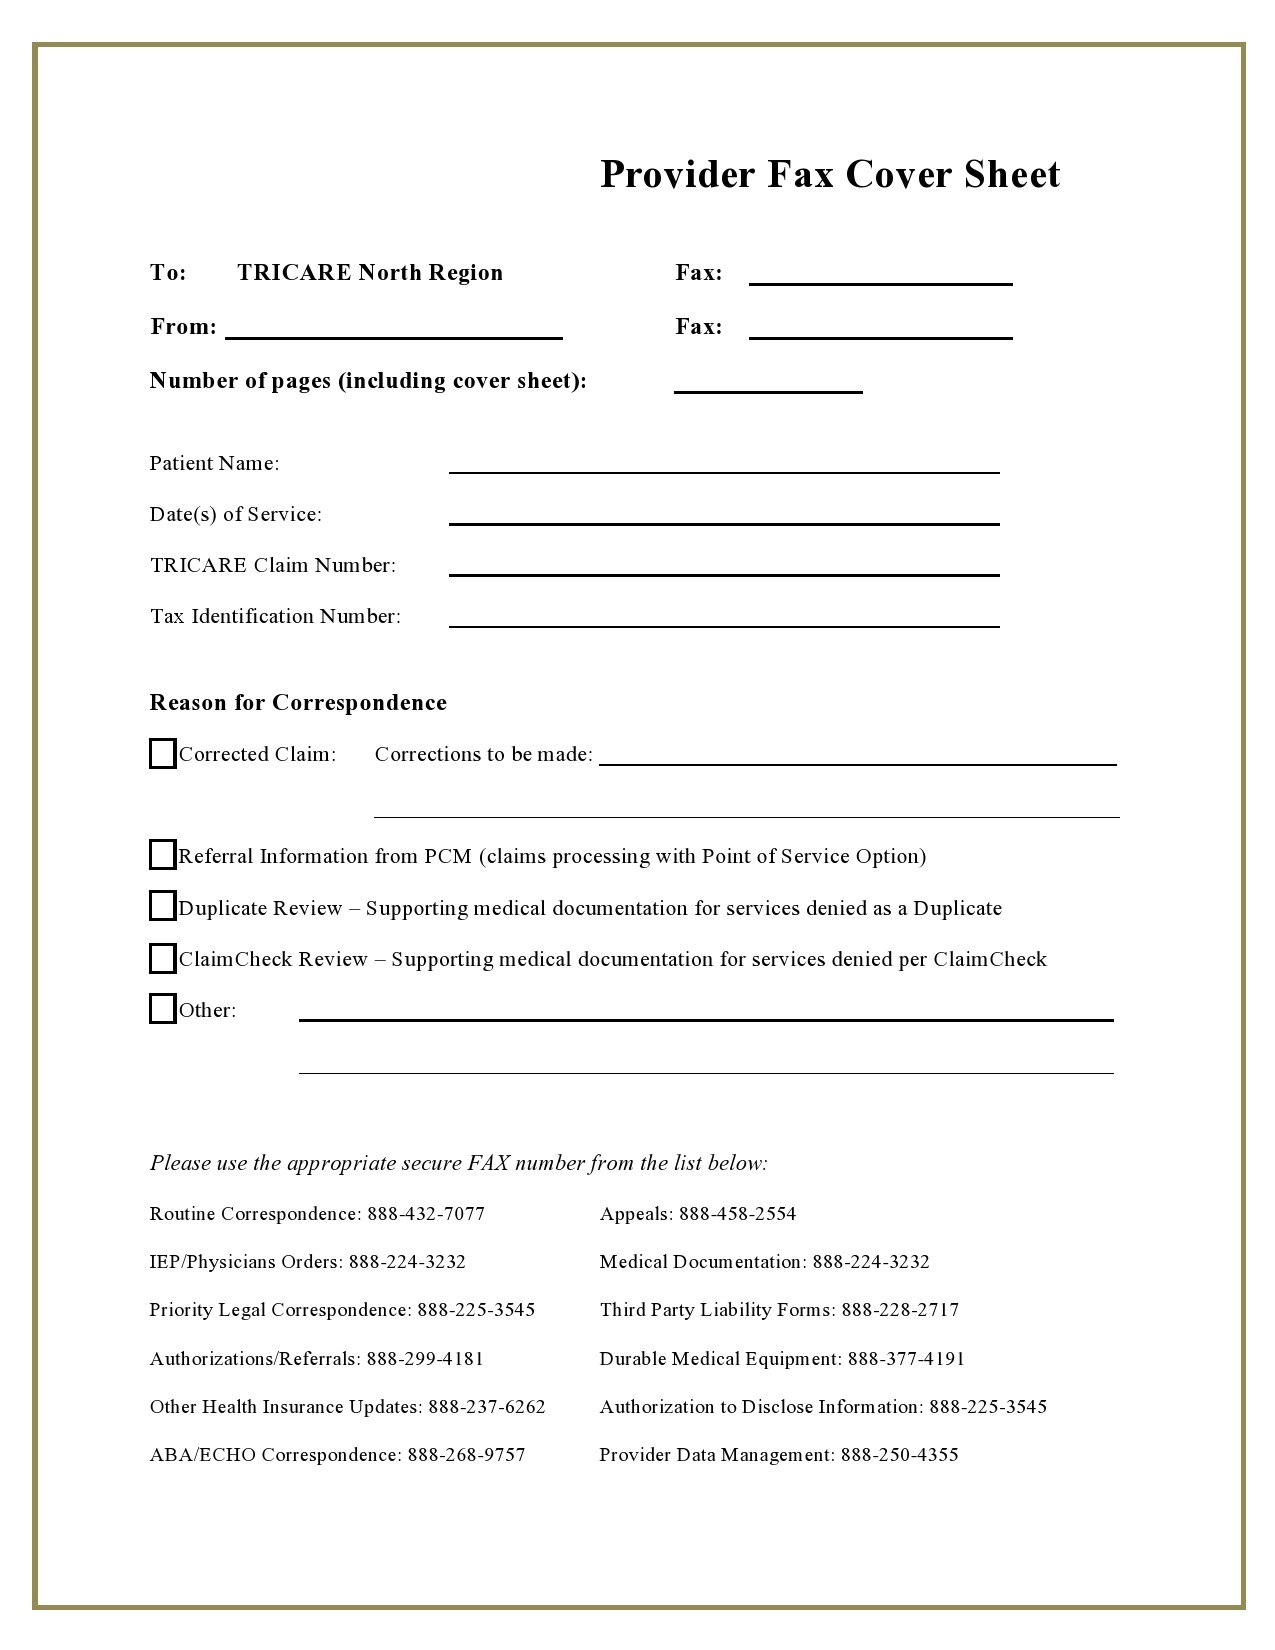 free fax cover sheet 27